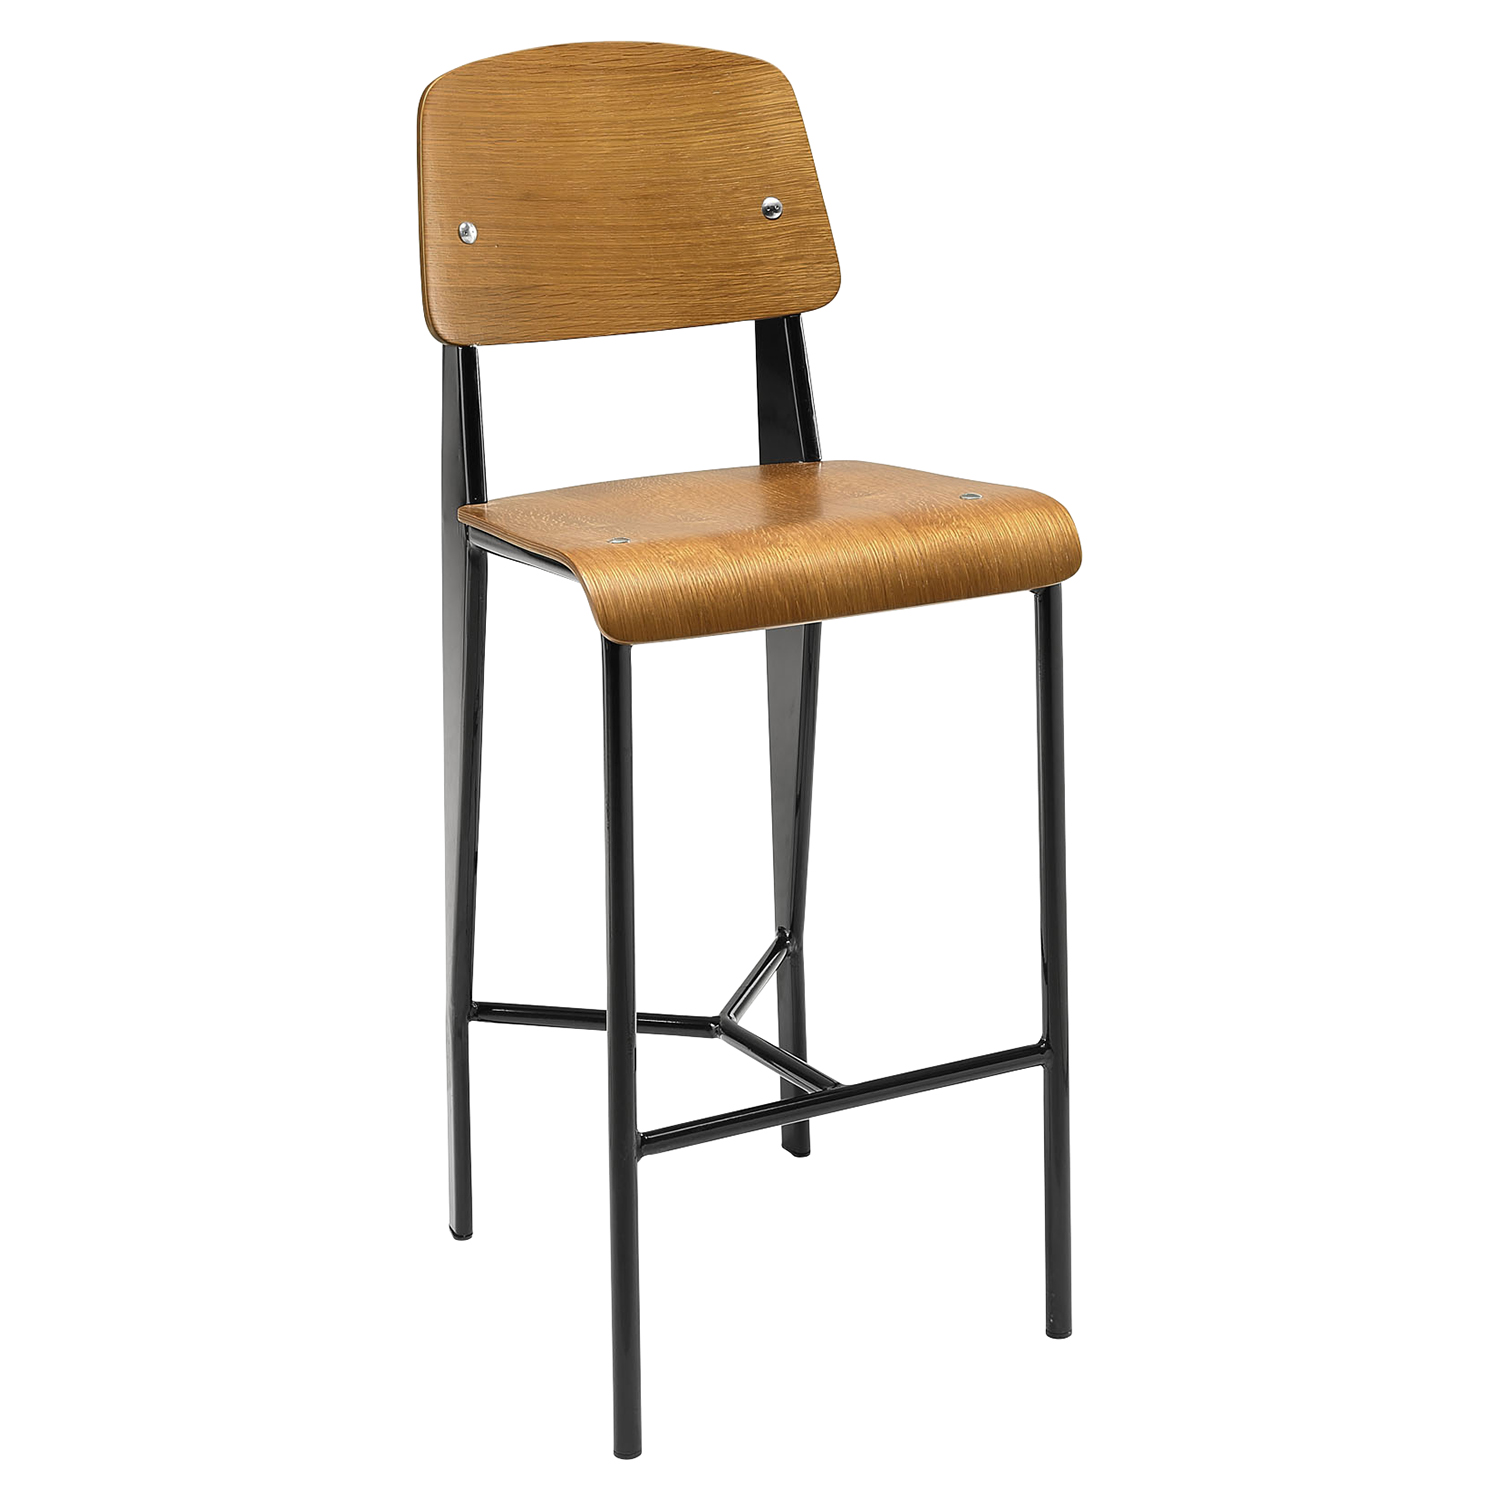 Cabin Counter Stool - Walnut, Black